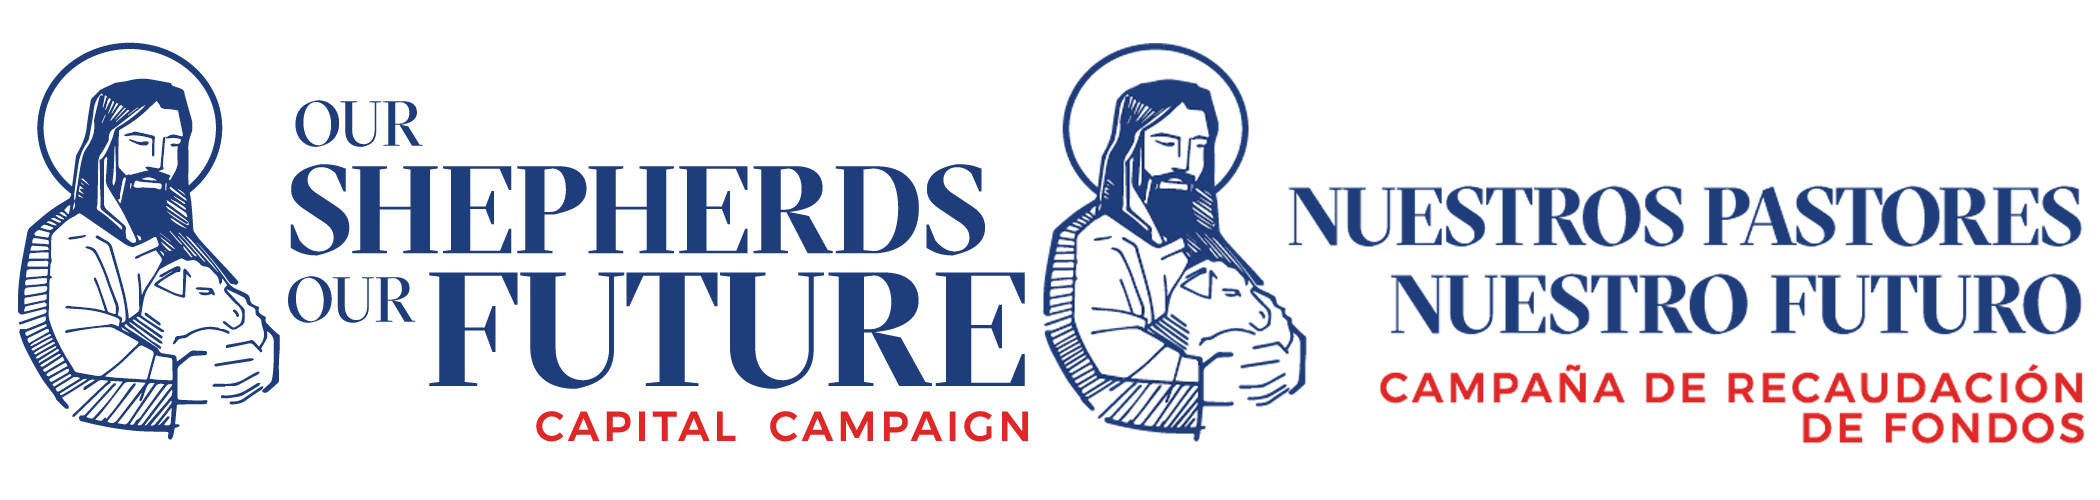 Our Shepherds-Our Future Campaign logos, English and Spanish